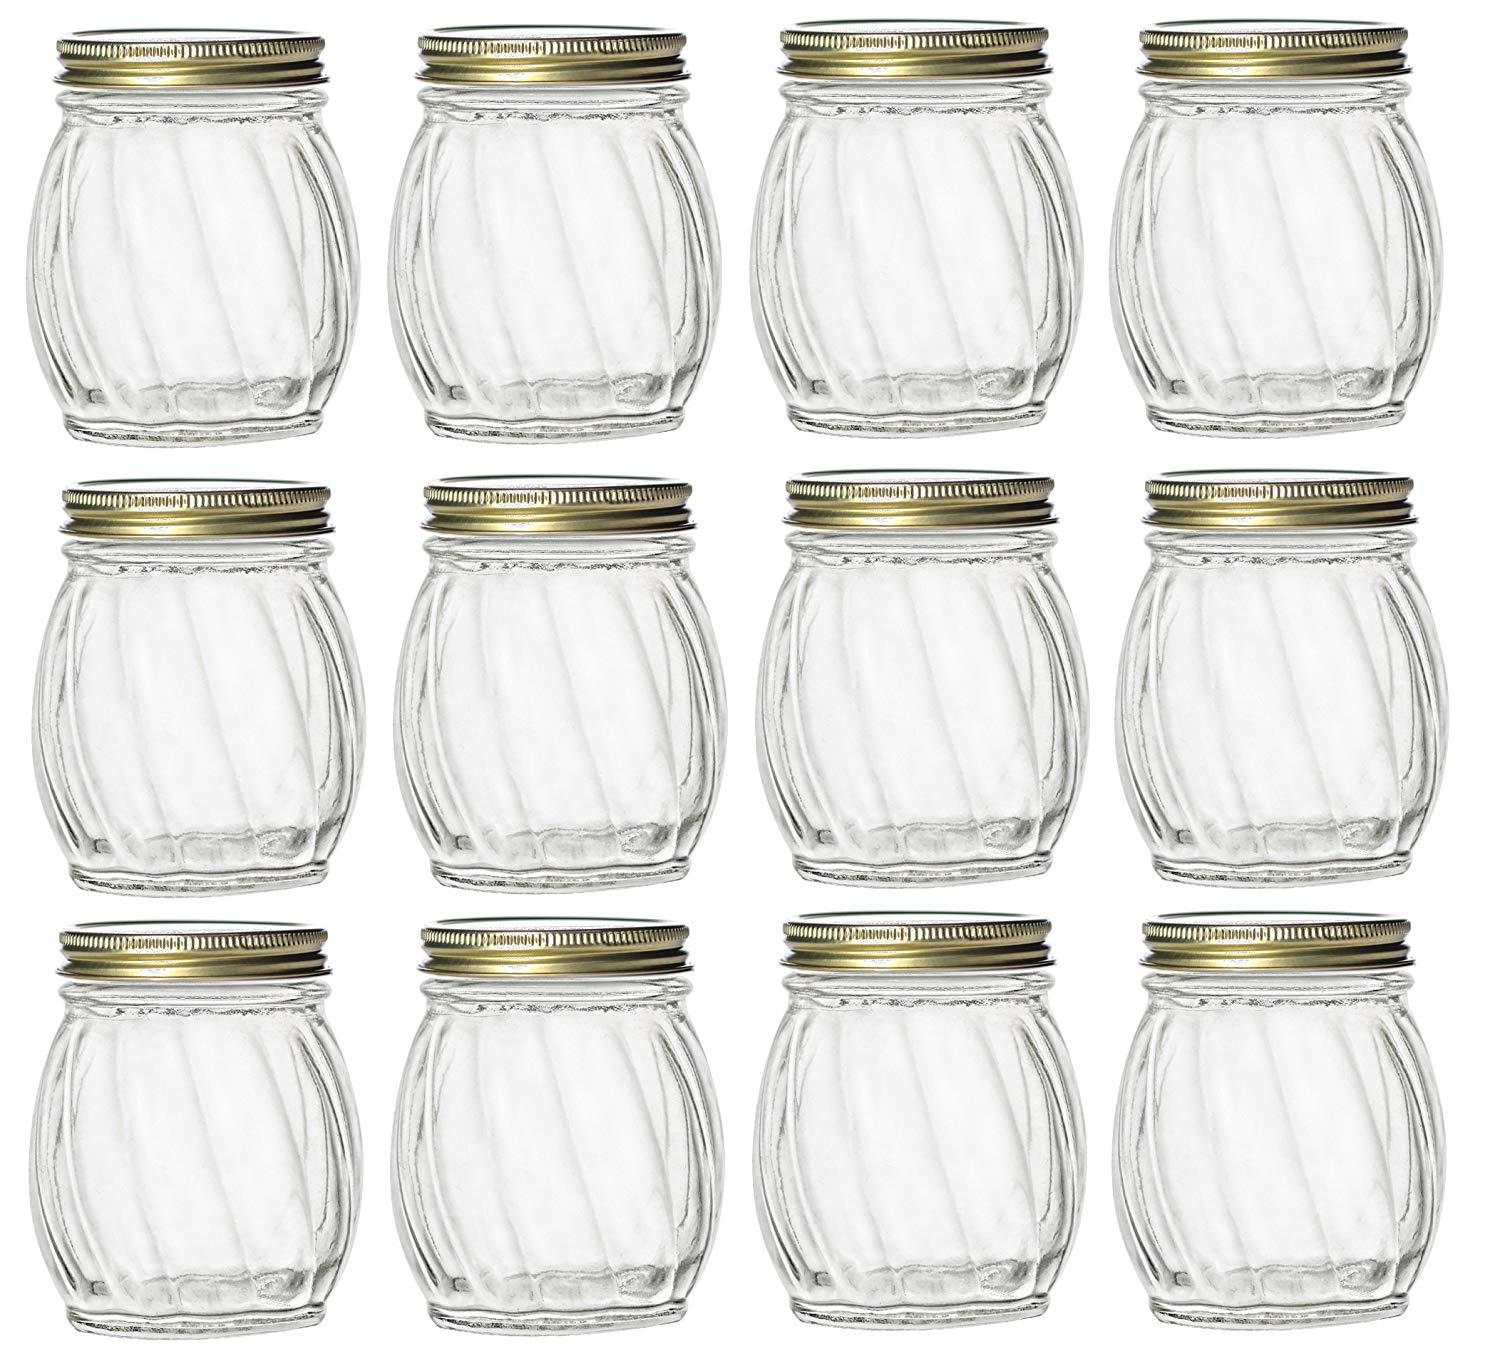 e3693fbe8cf0 Buy Nakpunar 12 pcs Glass Spice Jars with Shaker Sifter and ...